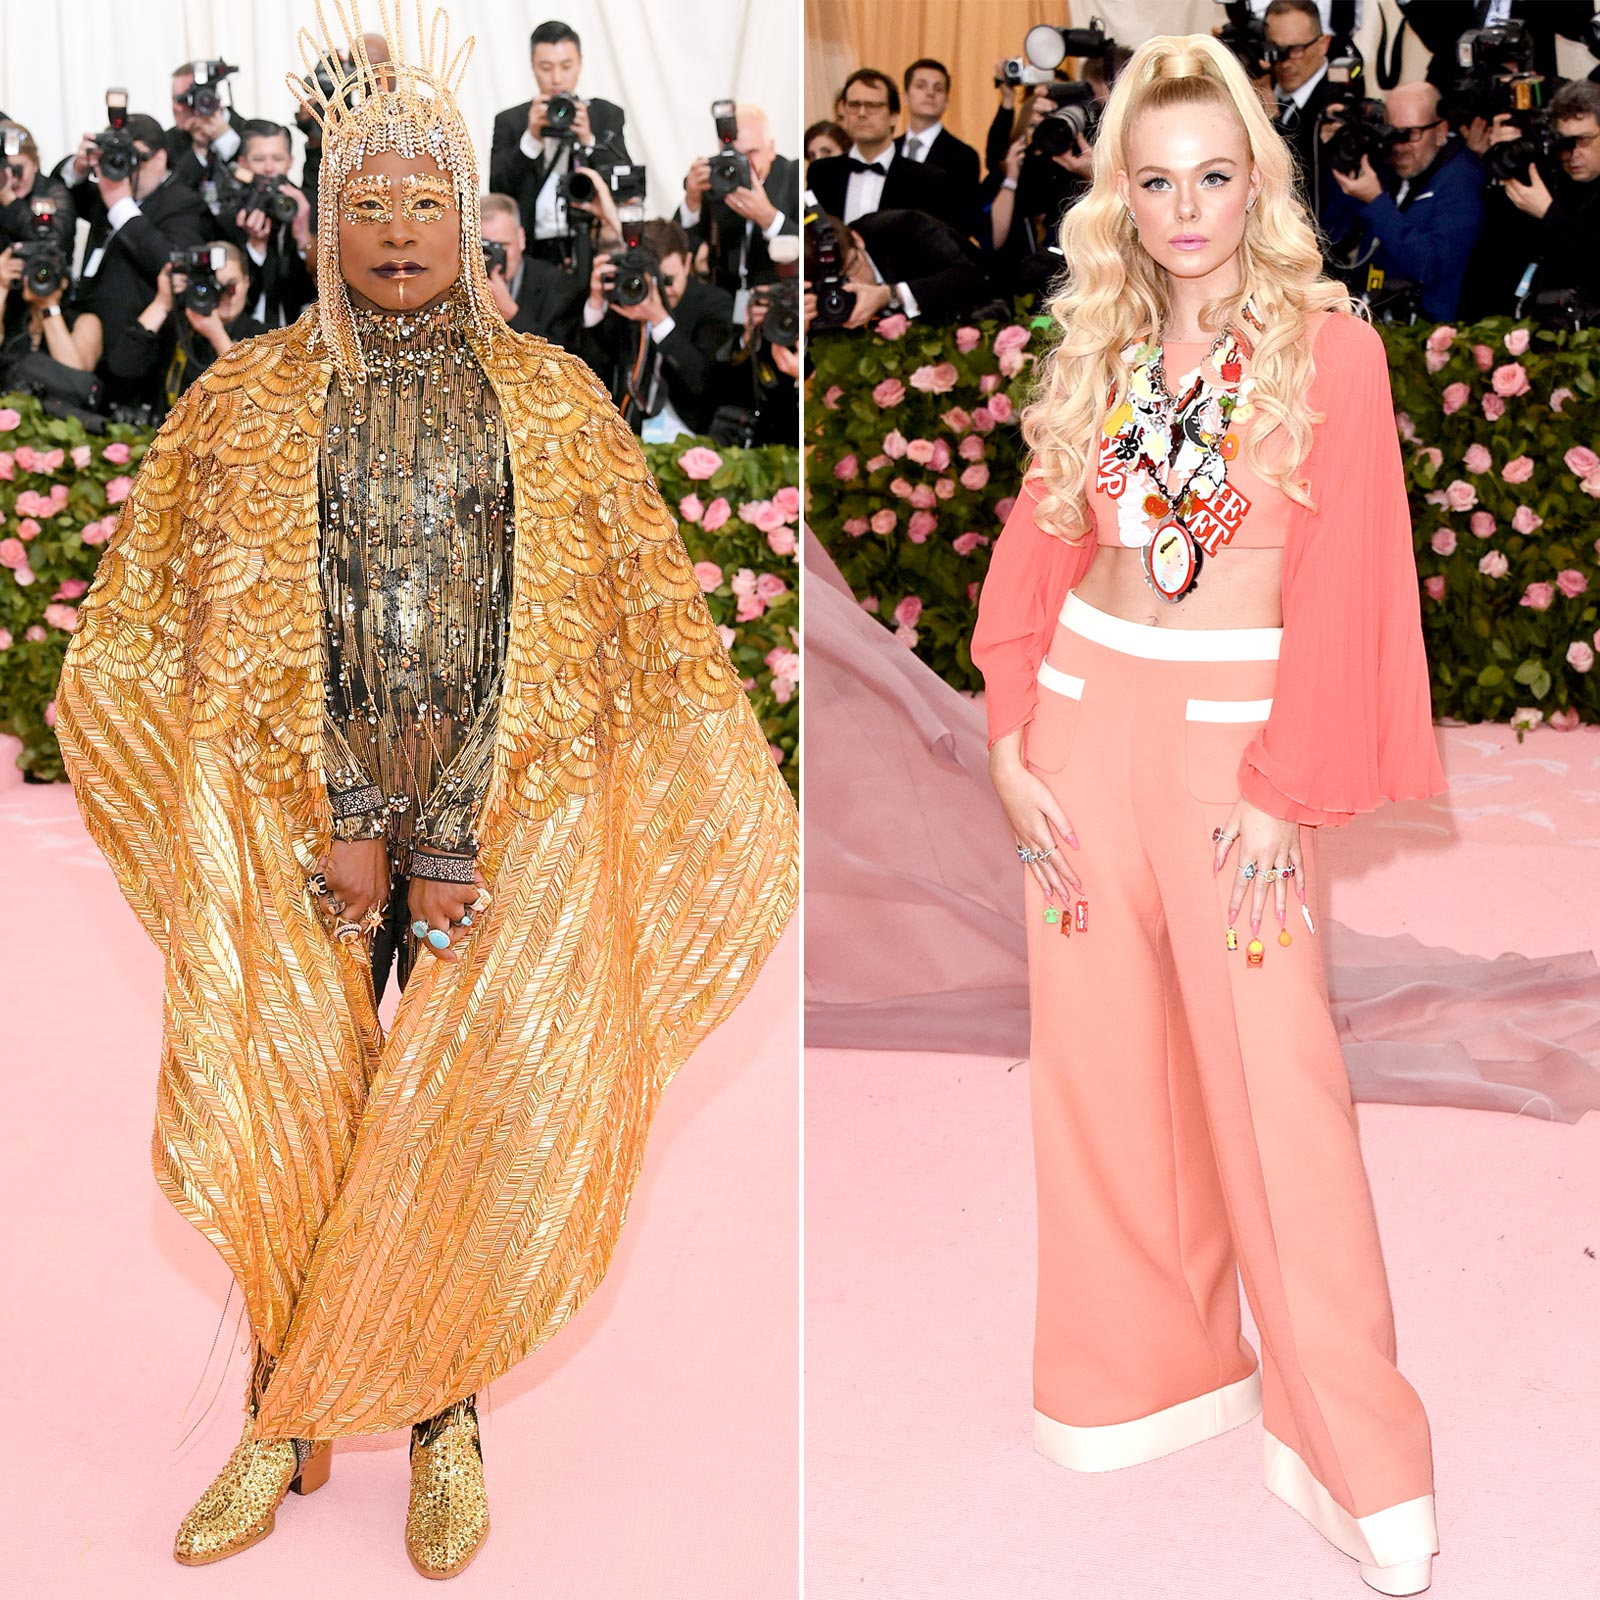 NEW YORK, NEW YORK - MAY 06: Billy Porter attends The 2019 Met Gala Celebrating Camp: Notes on Fashion at Metropolitan Museum of Art on May 06, 2019 in New York City. (Photo by Neilson Barnard/Getty Images) NEW YORK, NEW YORK - MAY 06: Elle Fanning attends The 2019 Met Gala Celebrating Camp: Notes on Fashion at Metropolitan Museum of Art on May 06, 2019 in New York City. (Photo by John Shearer/Getty Images for THR)